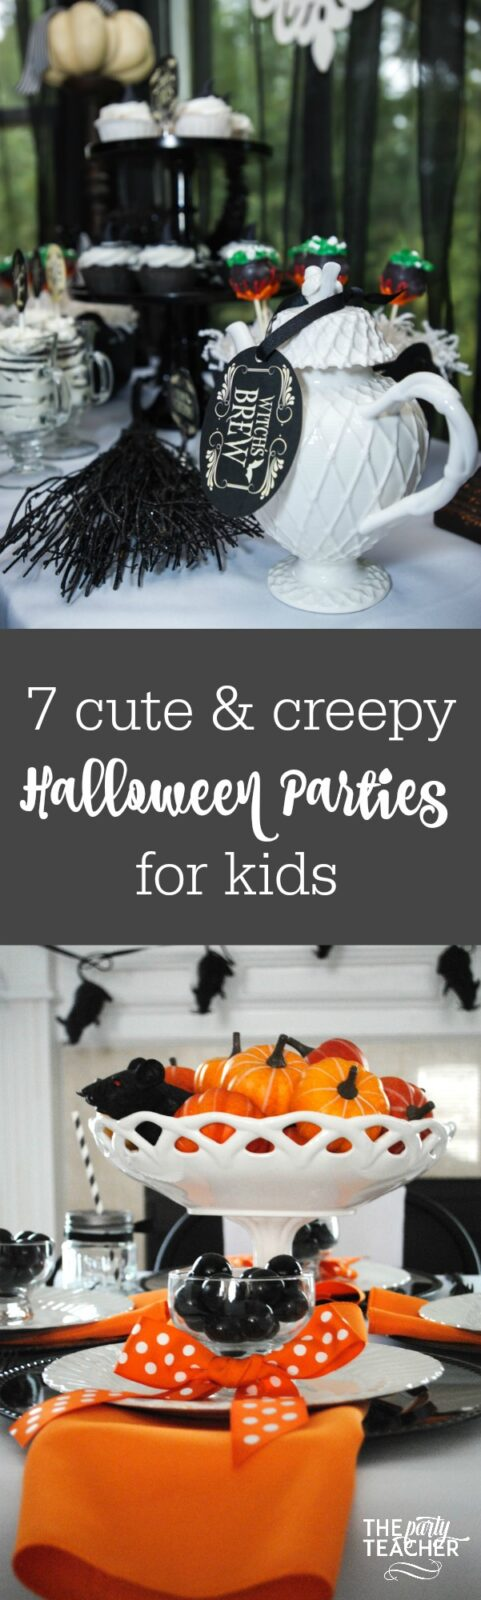 7-cute-and-creepy-halloween-parties-for-kids-by-the-party-teacher